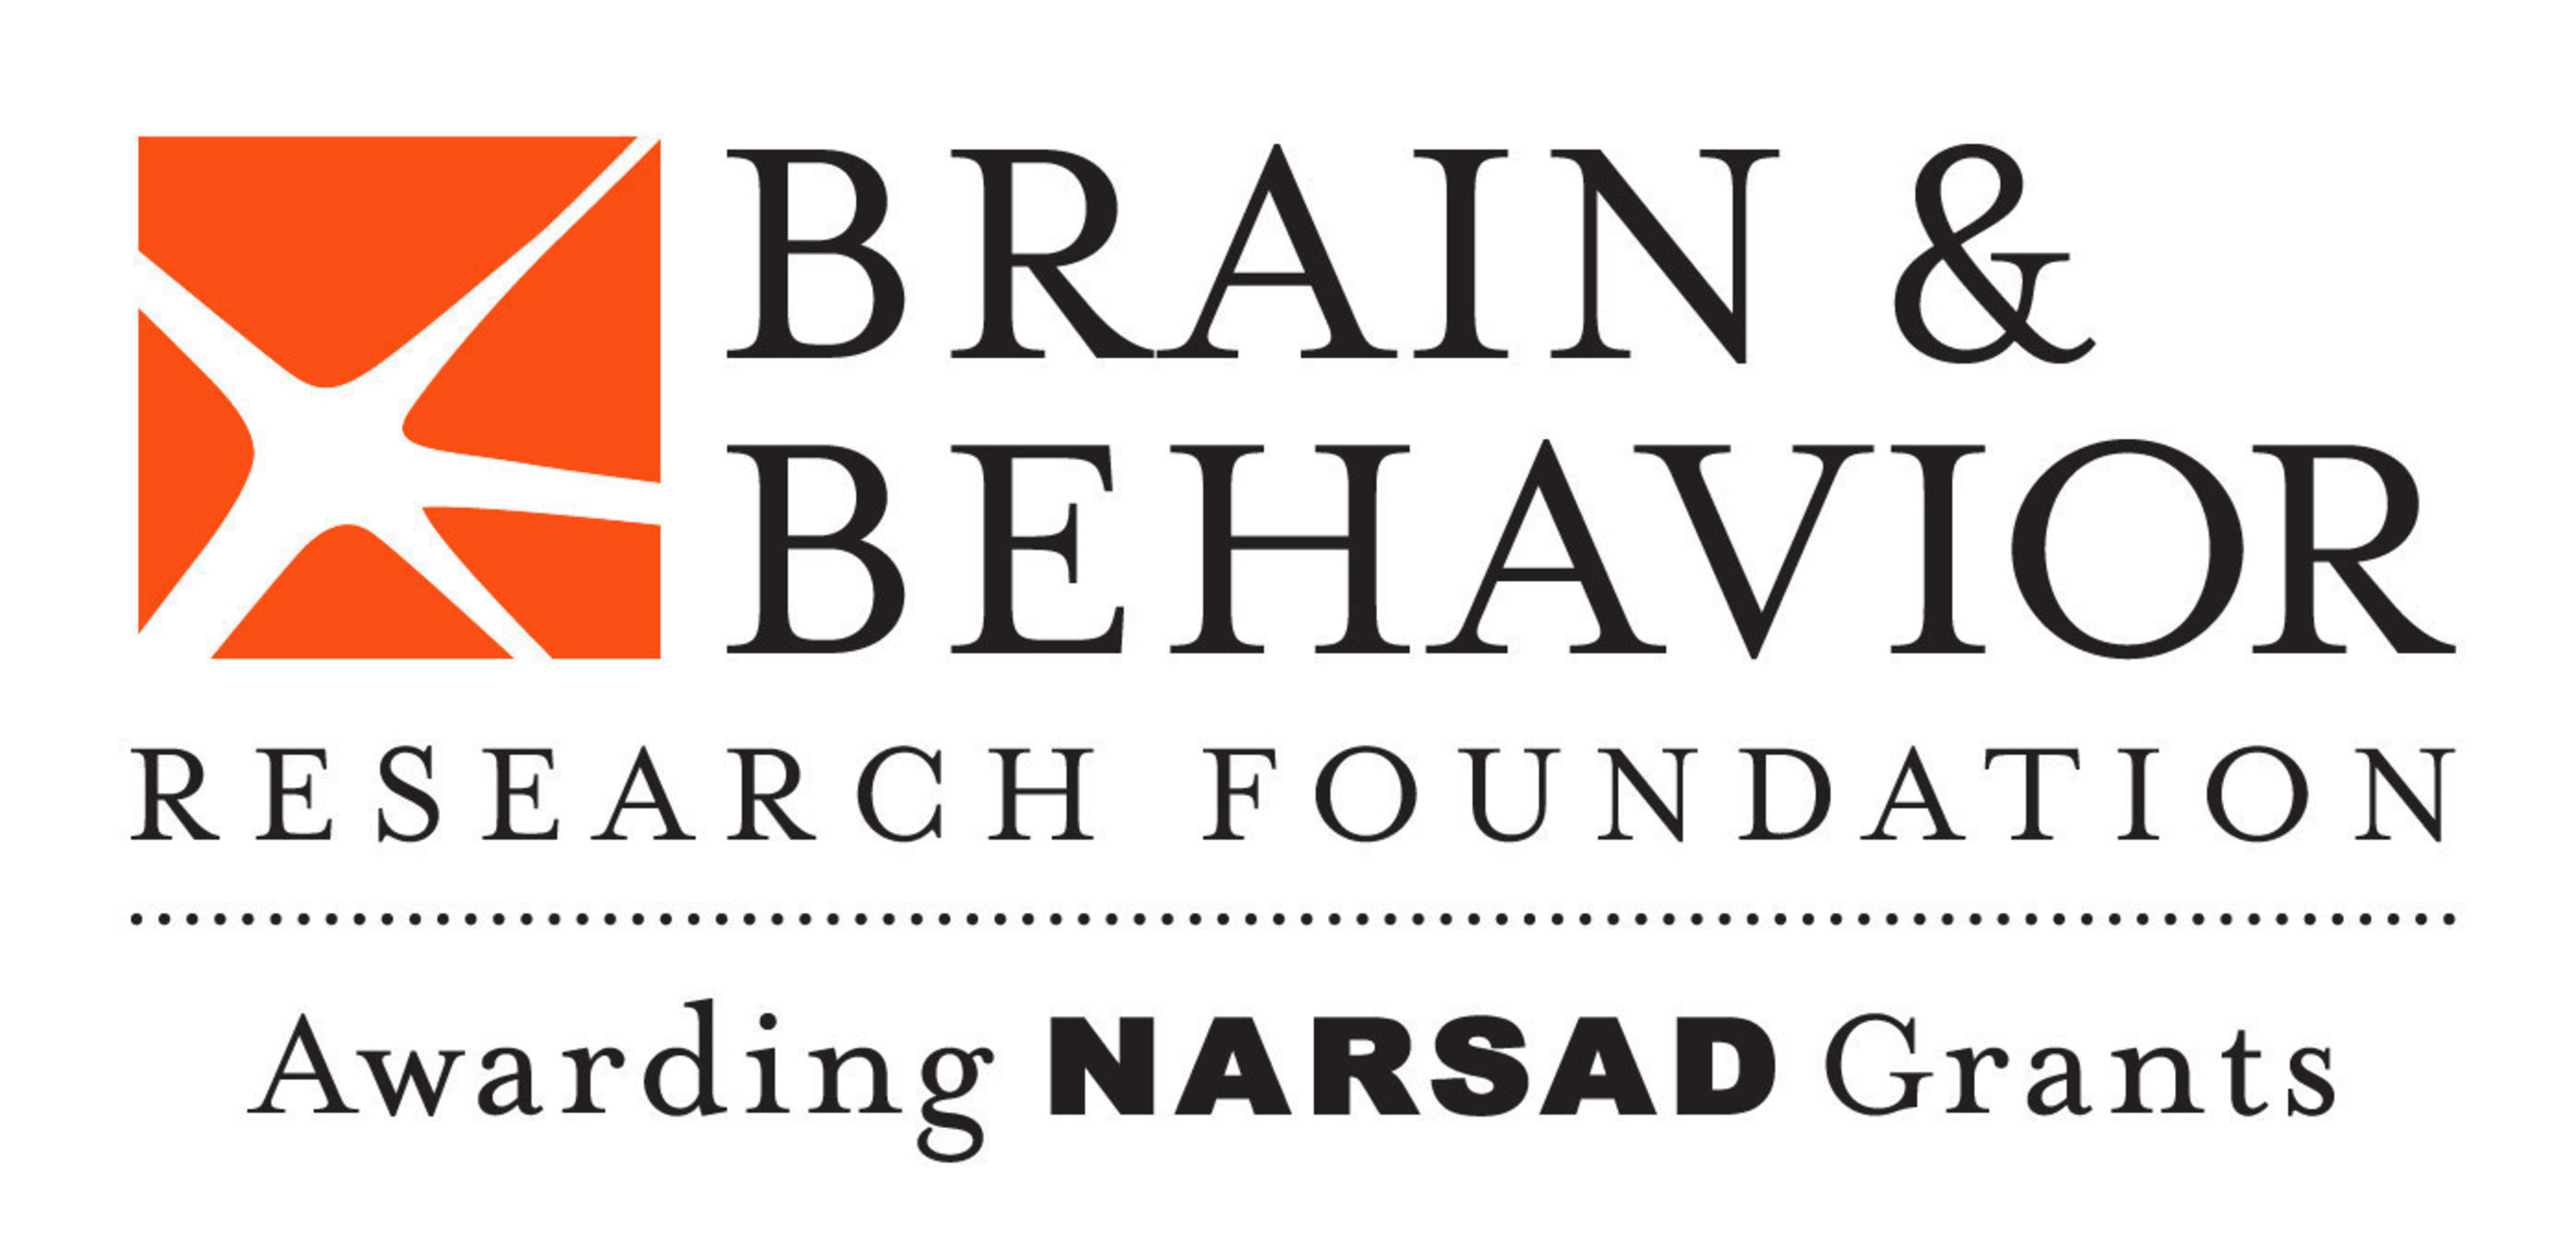 Committed to alleviating the suffering caused by mental illness by awarding grants that will lead to advances and breakthroughs in scientific research.